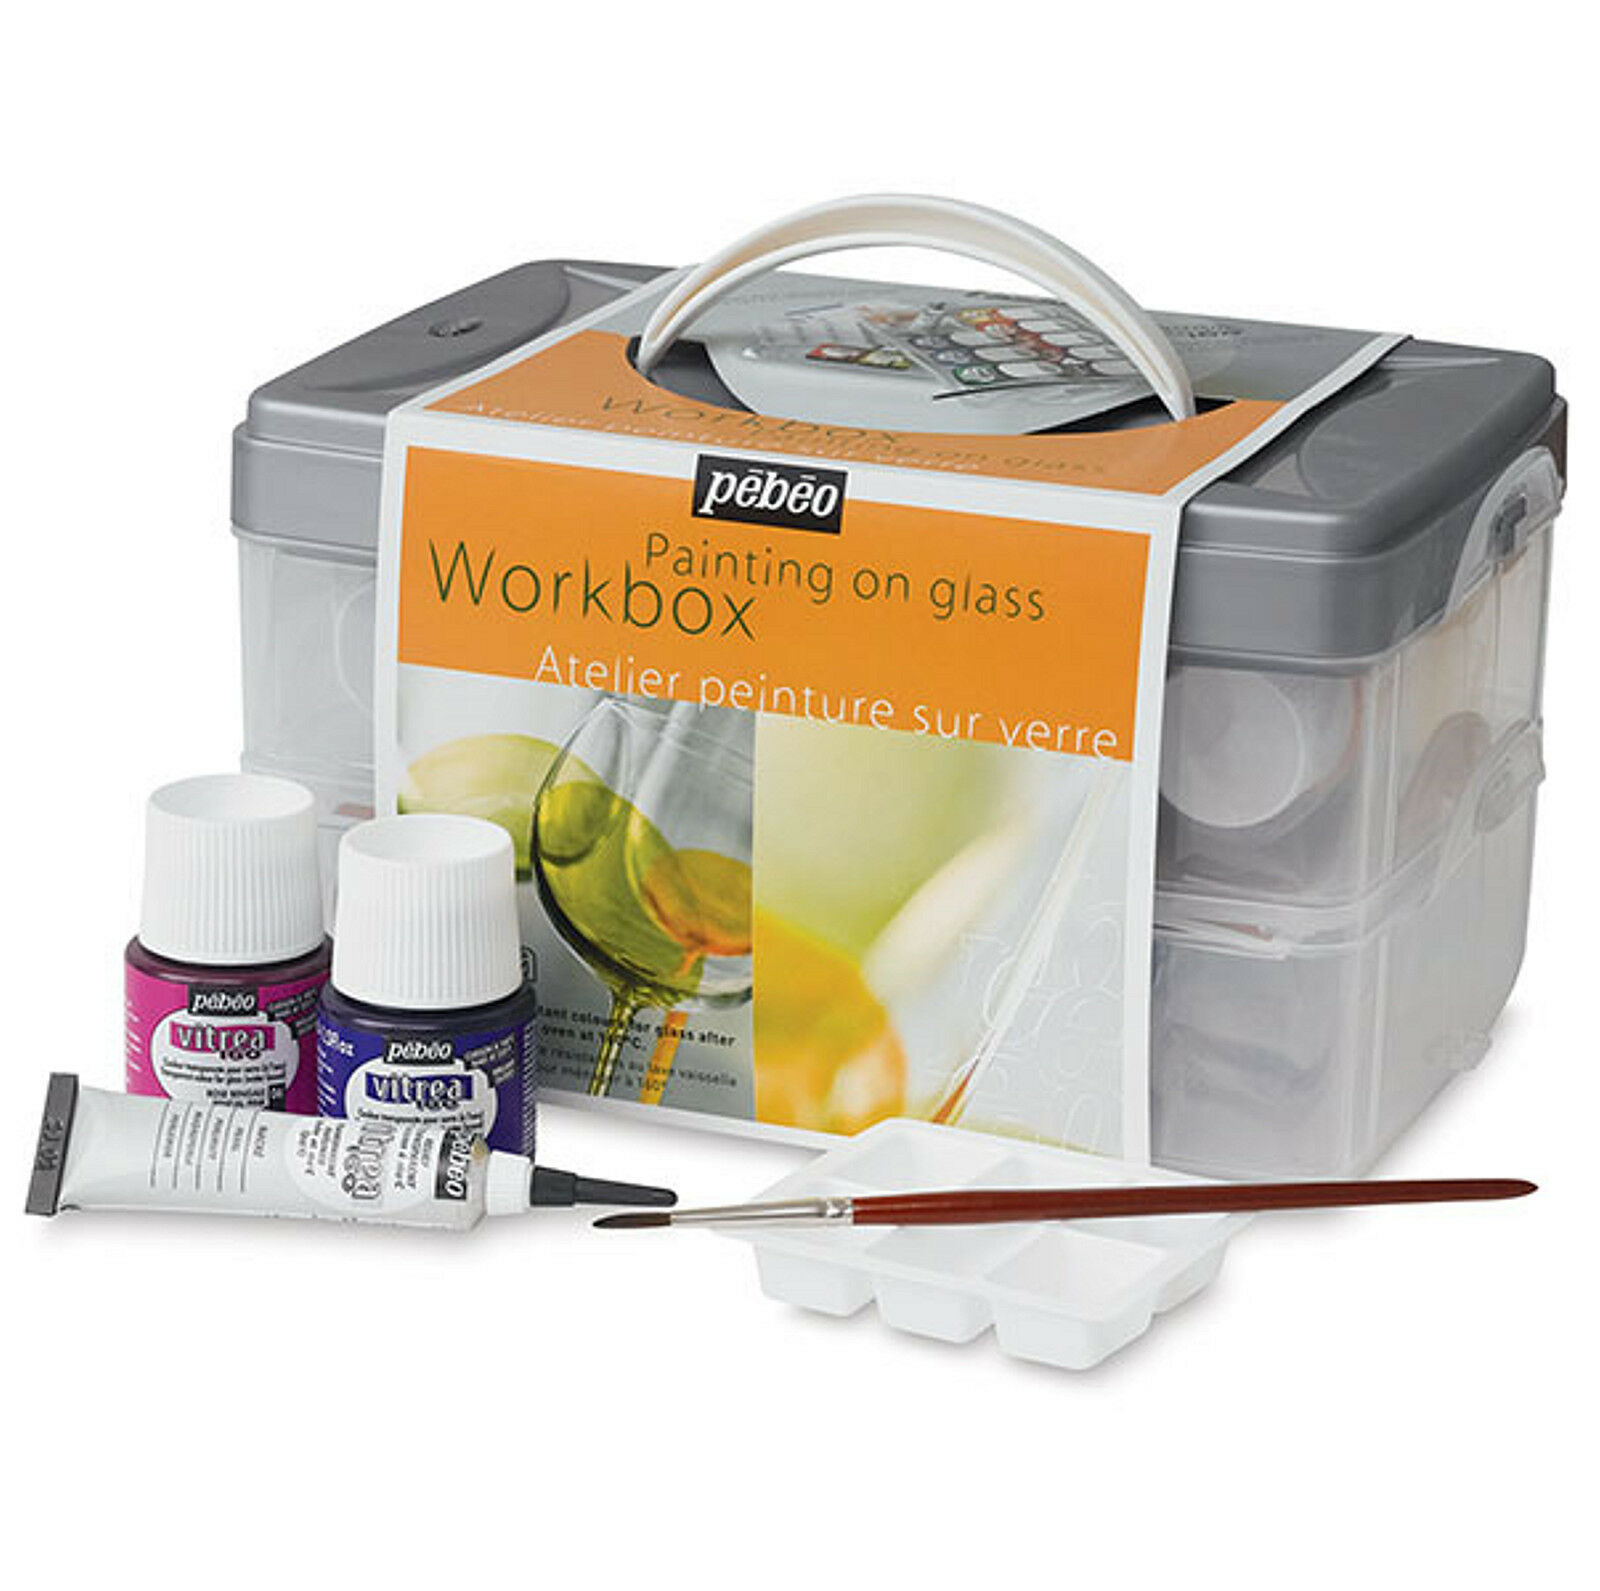 pebeo vitrea 160 workbox painting on glass starter set 10